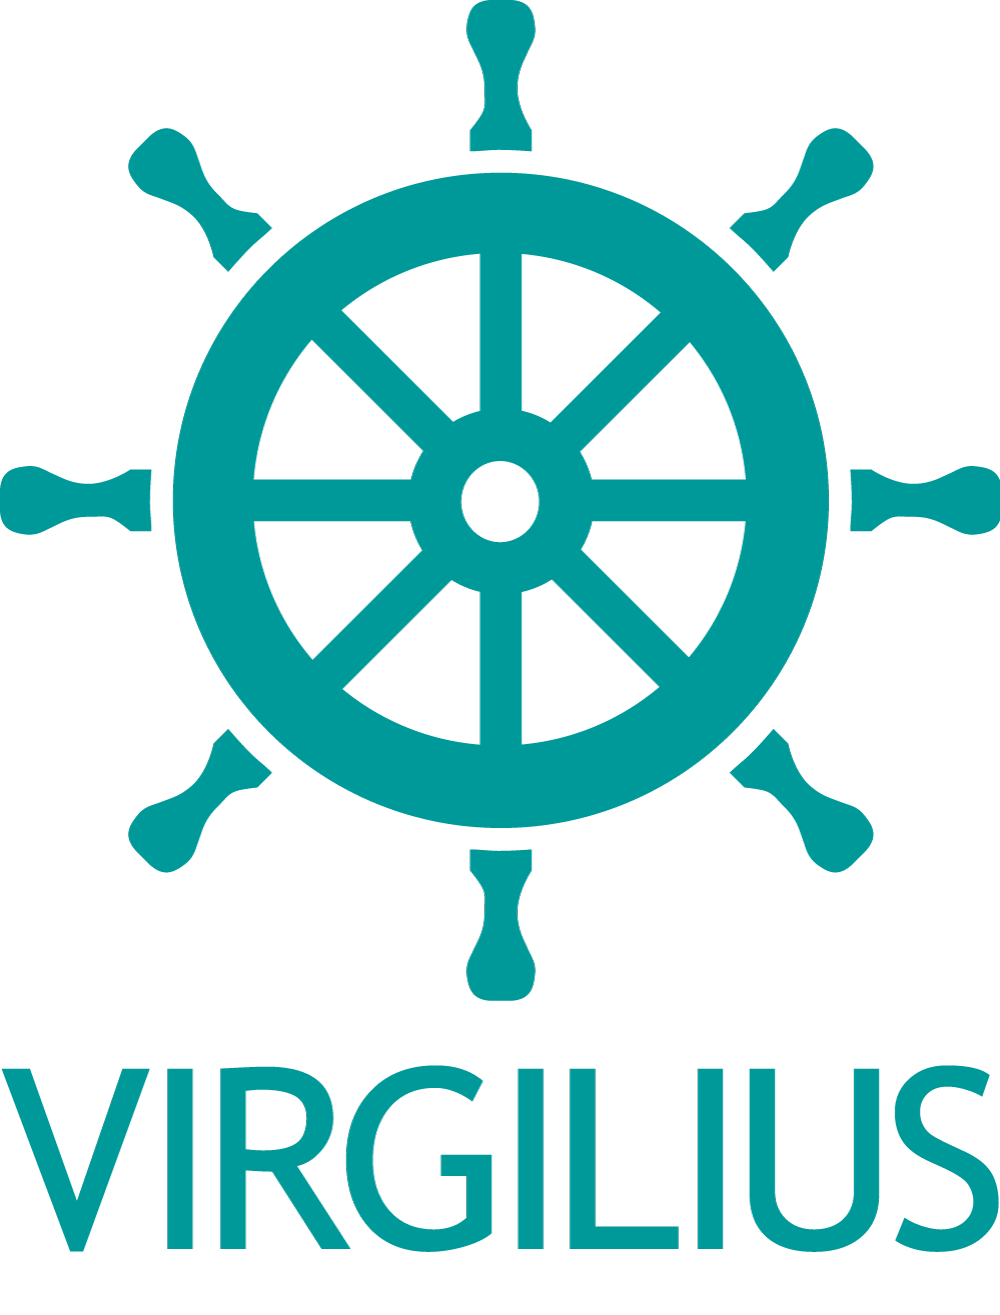 VirgiliusLogo_transparent_1000px_wide